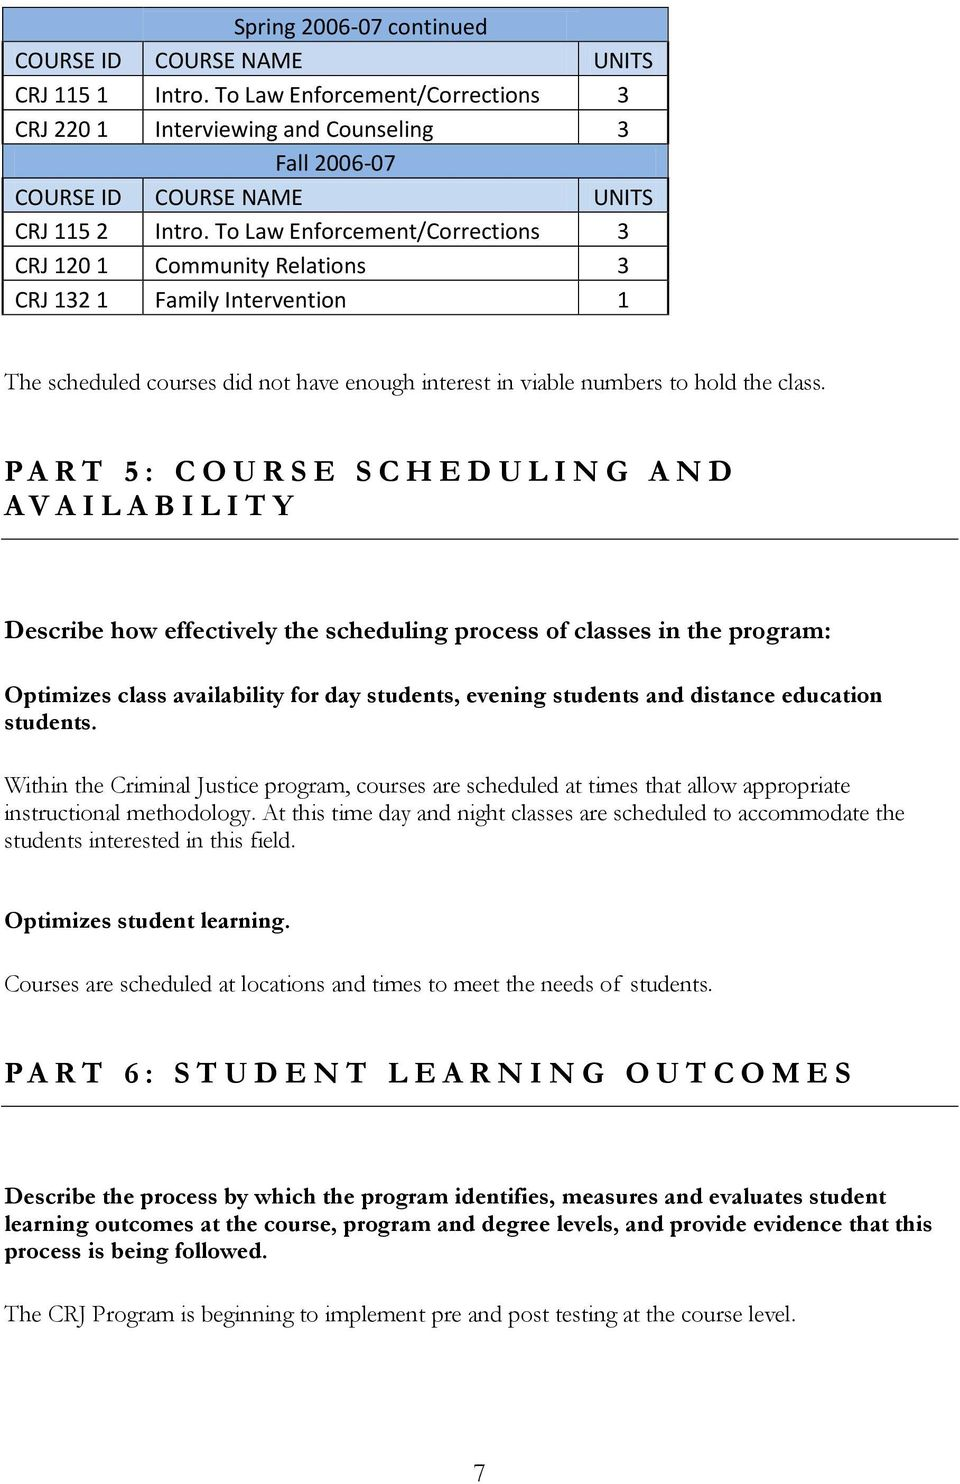 PART 5: COURSE SCHEDULING AND AVAILABILITY Describe how effectively the scheduling process of classes in the program: Optimizes class availability for day students, evening students and distance